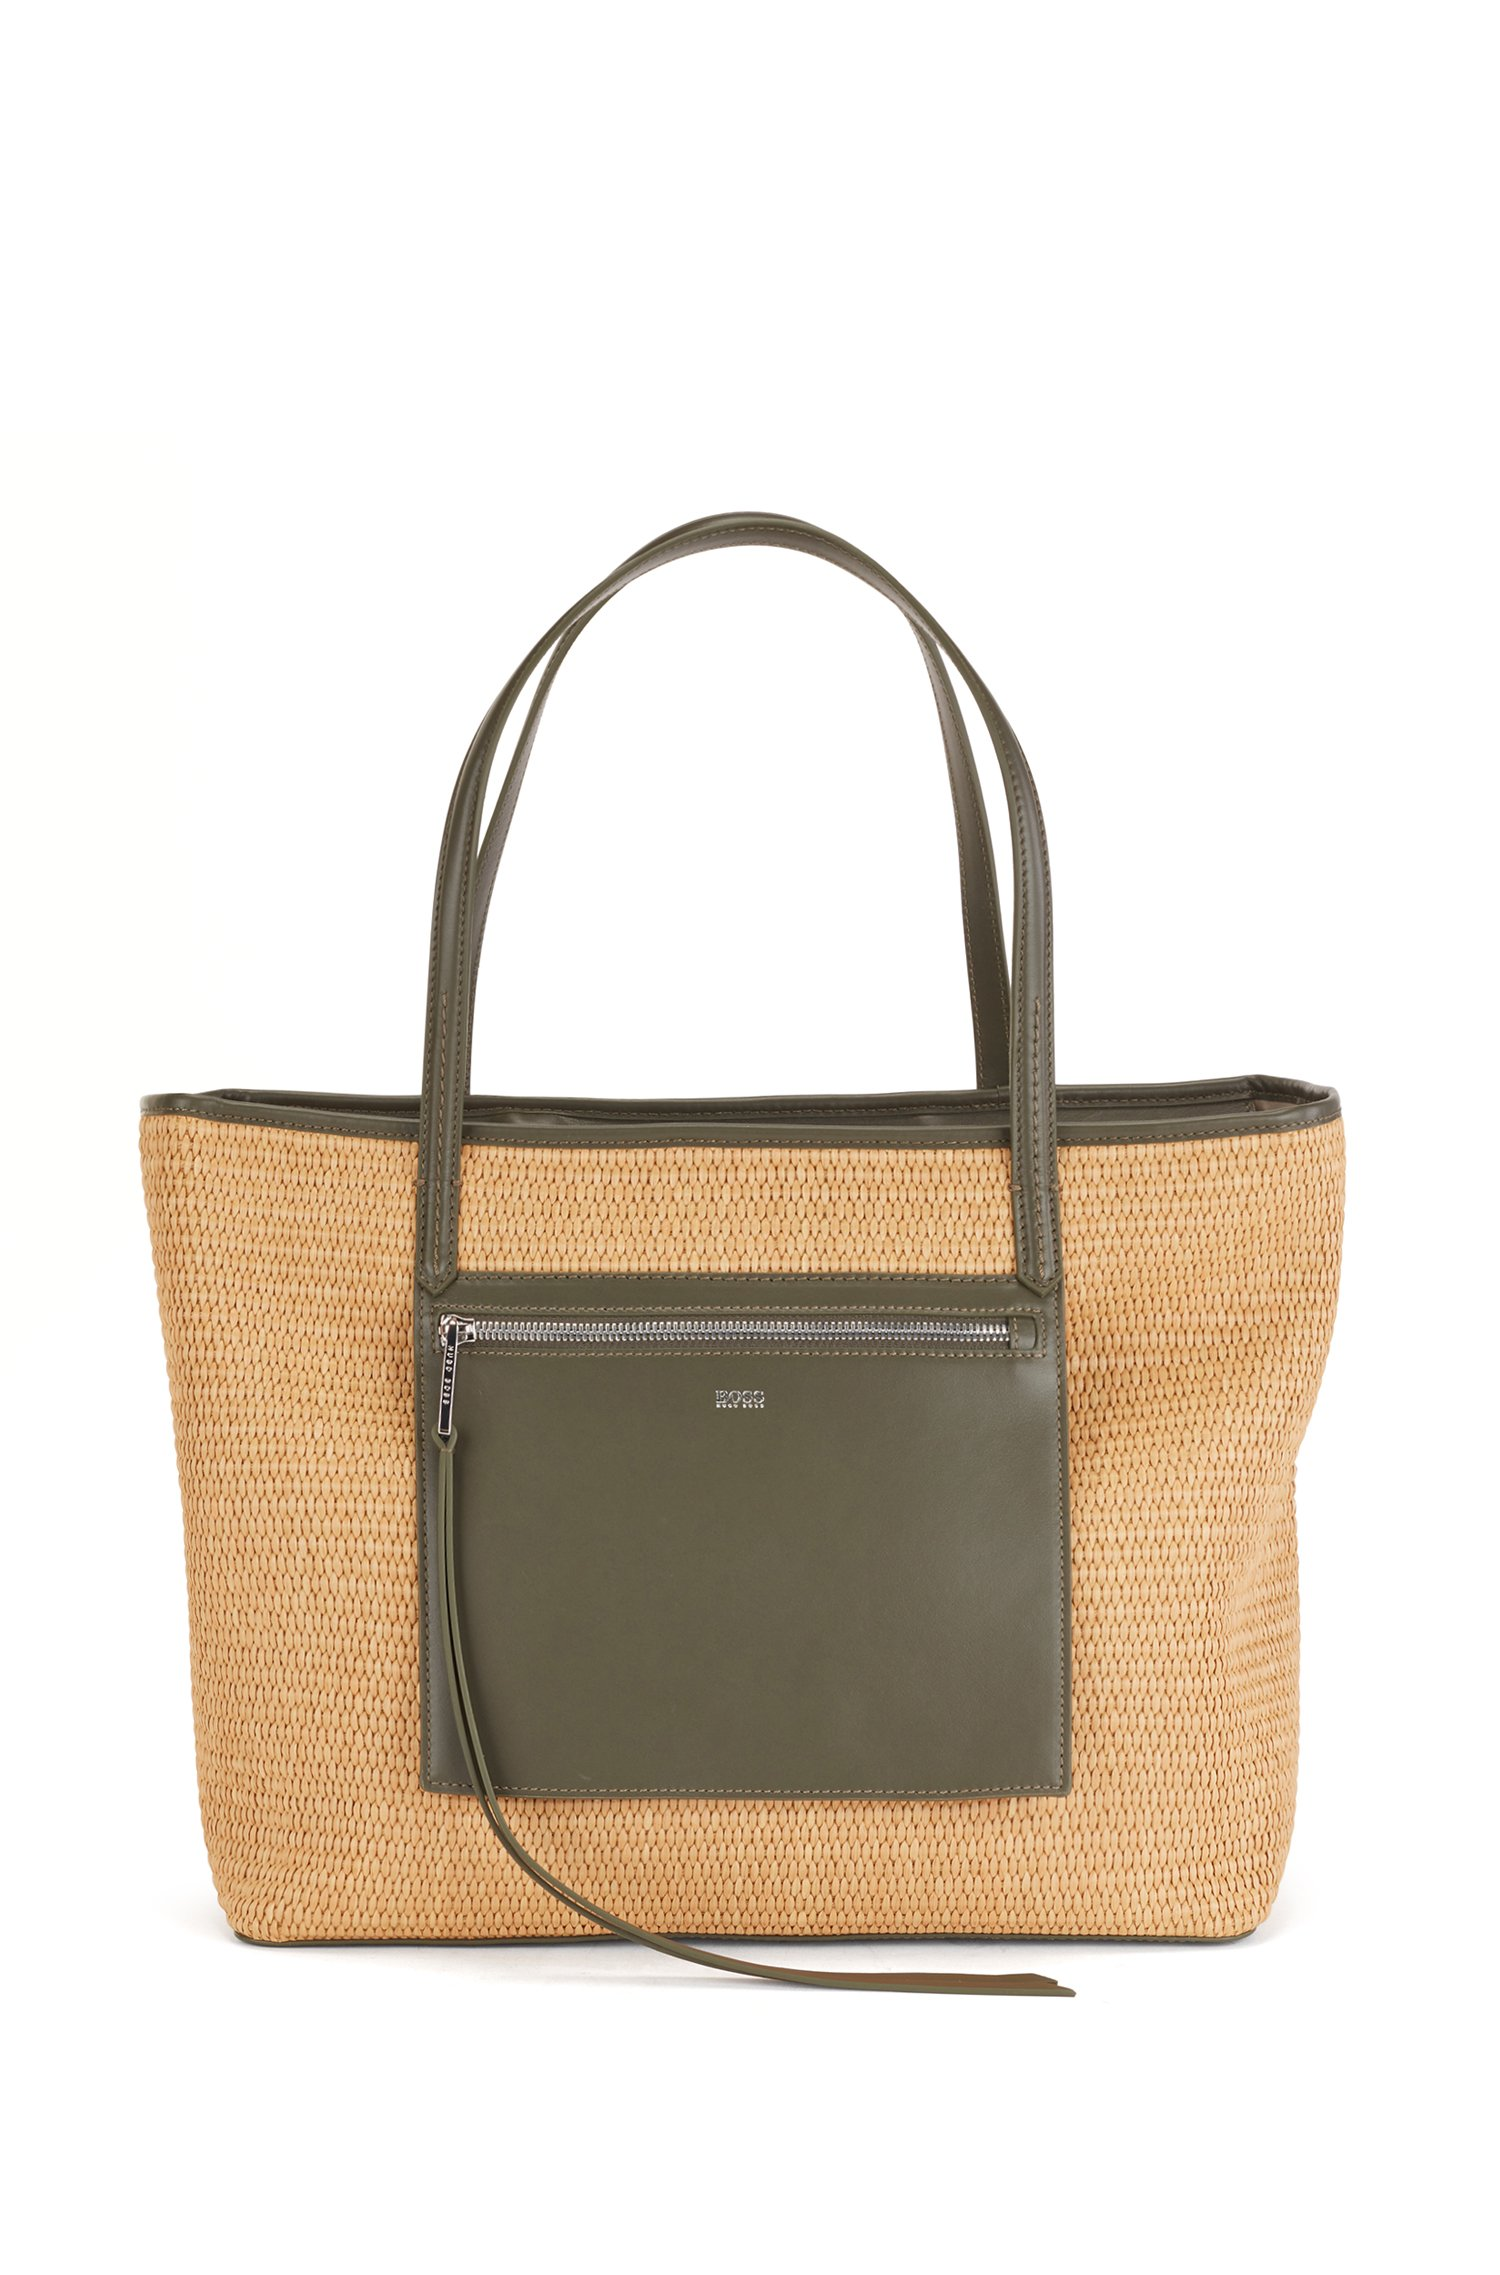 Raffia shopper bag with leather pocket and zip puller, White